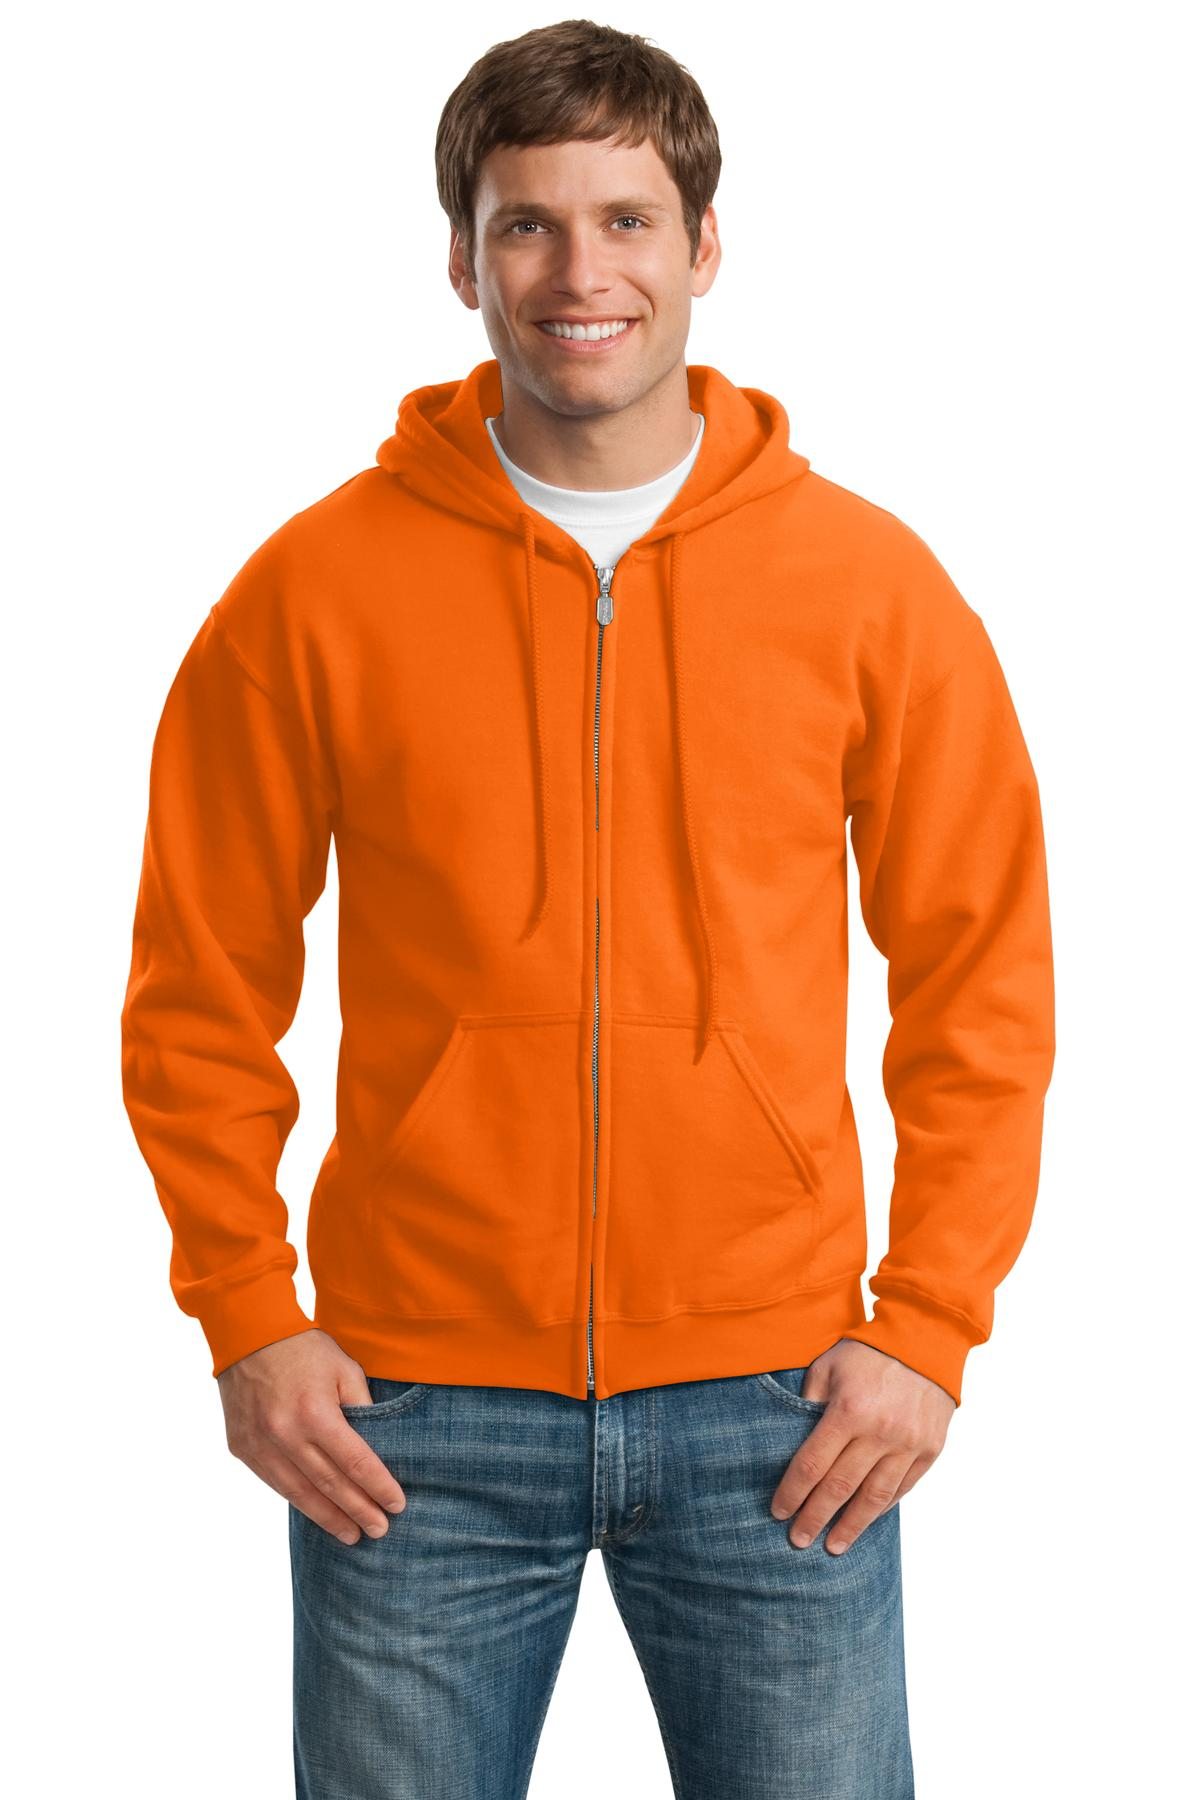 Gildan ®  - Heavy Blend™ Full-Zip Hooded Sweatshirt. 18600 - S. Orange